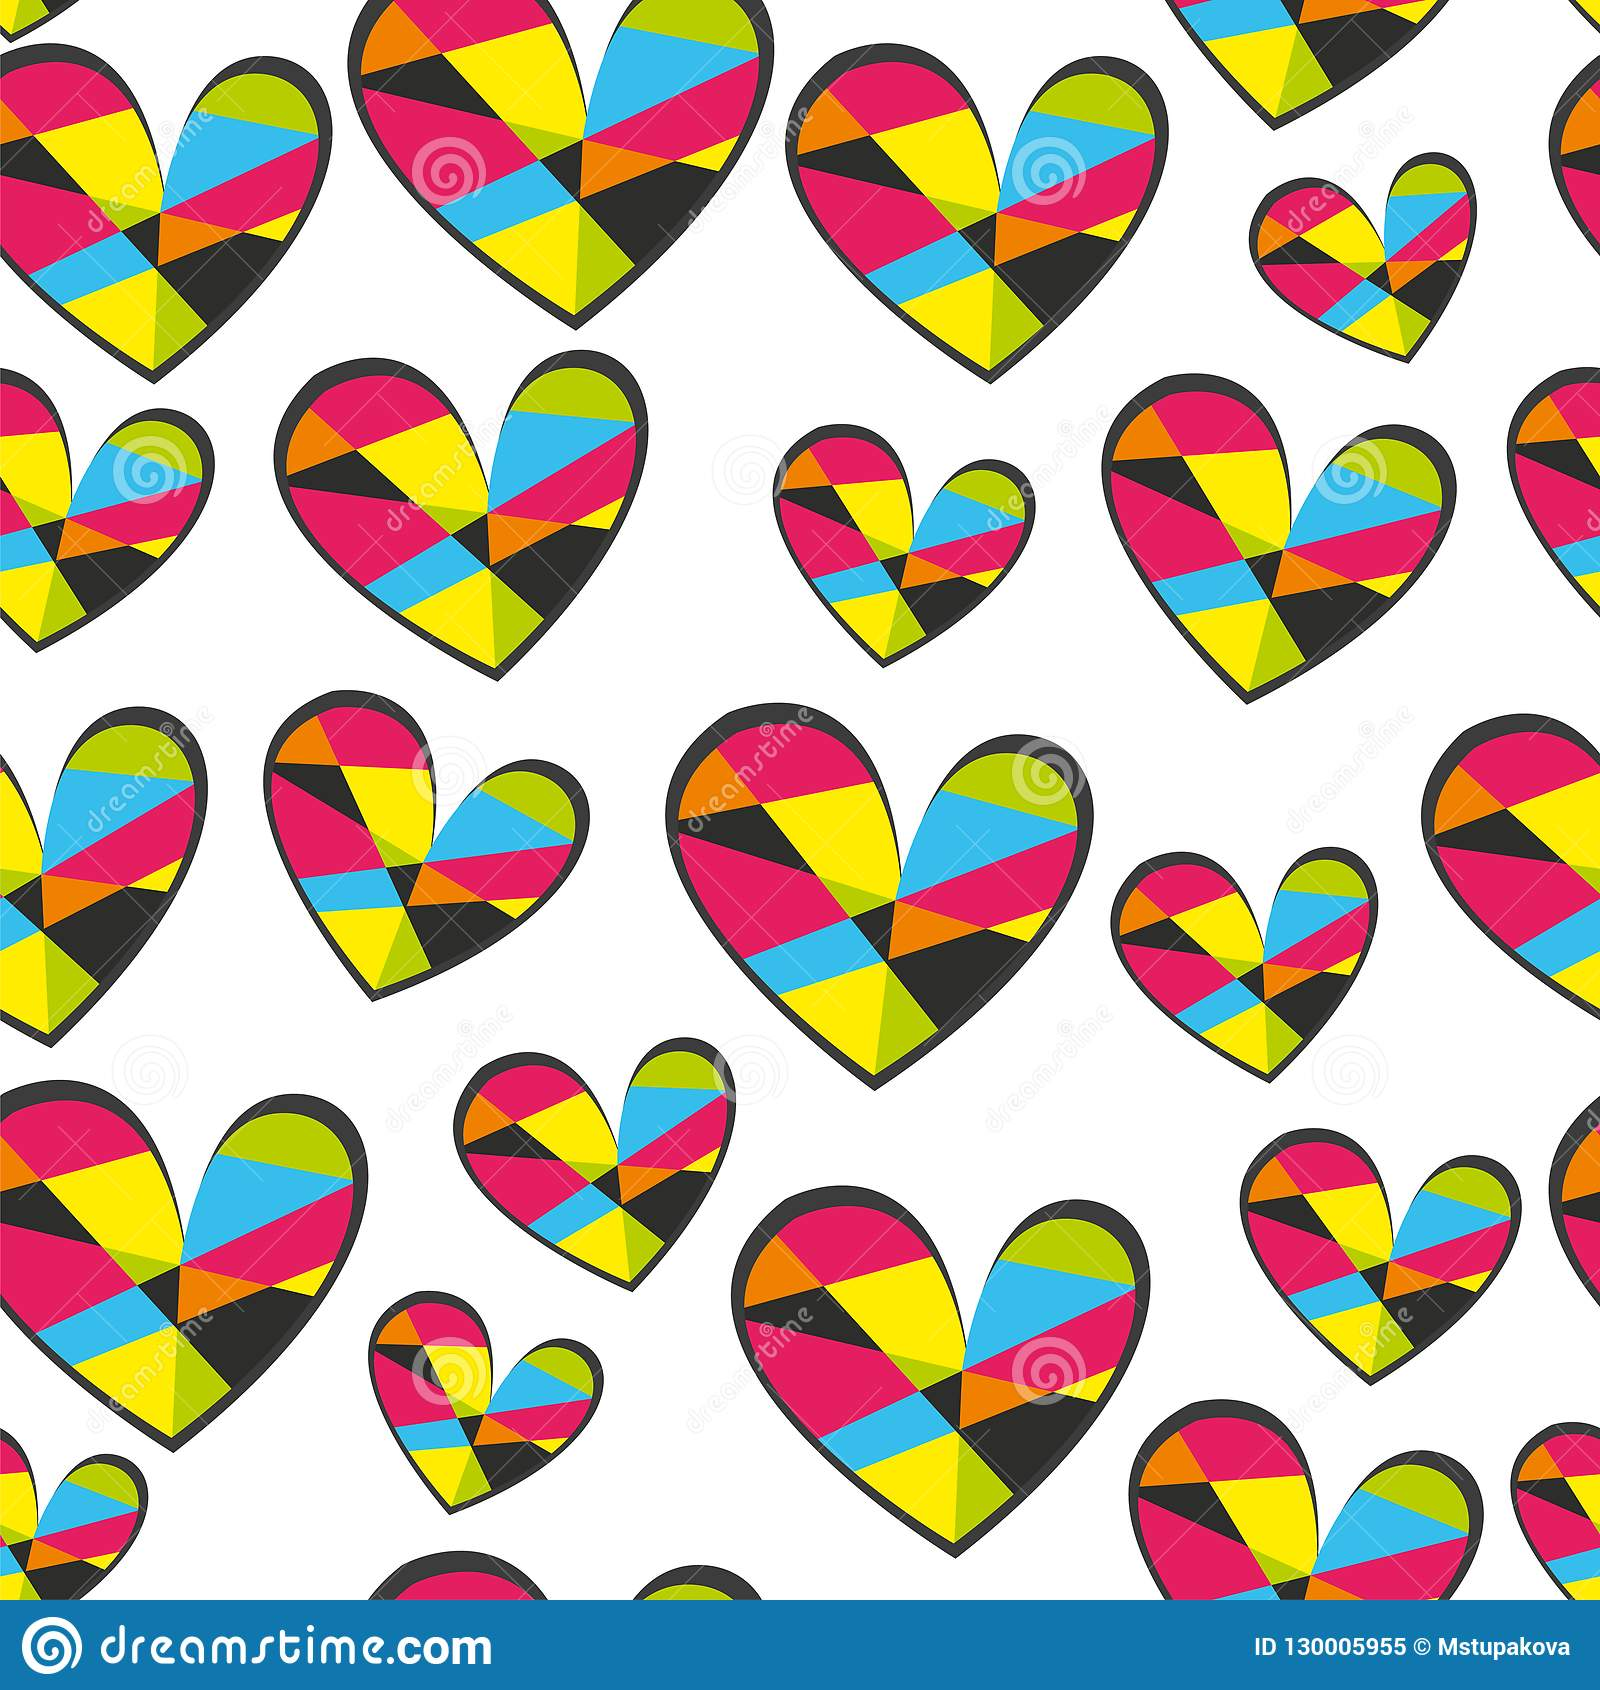 Hearts seamless vector pattern for girlish design. Girlish print with bright hearts on white.